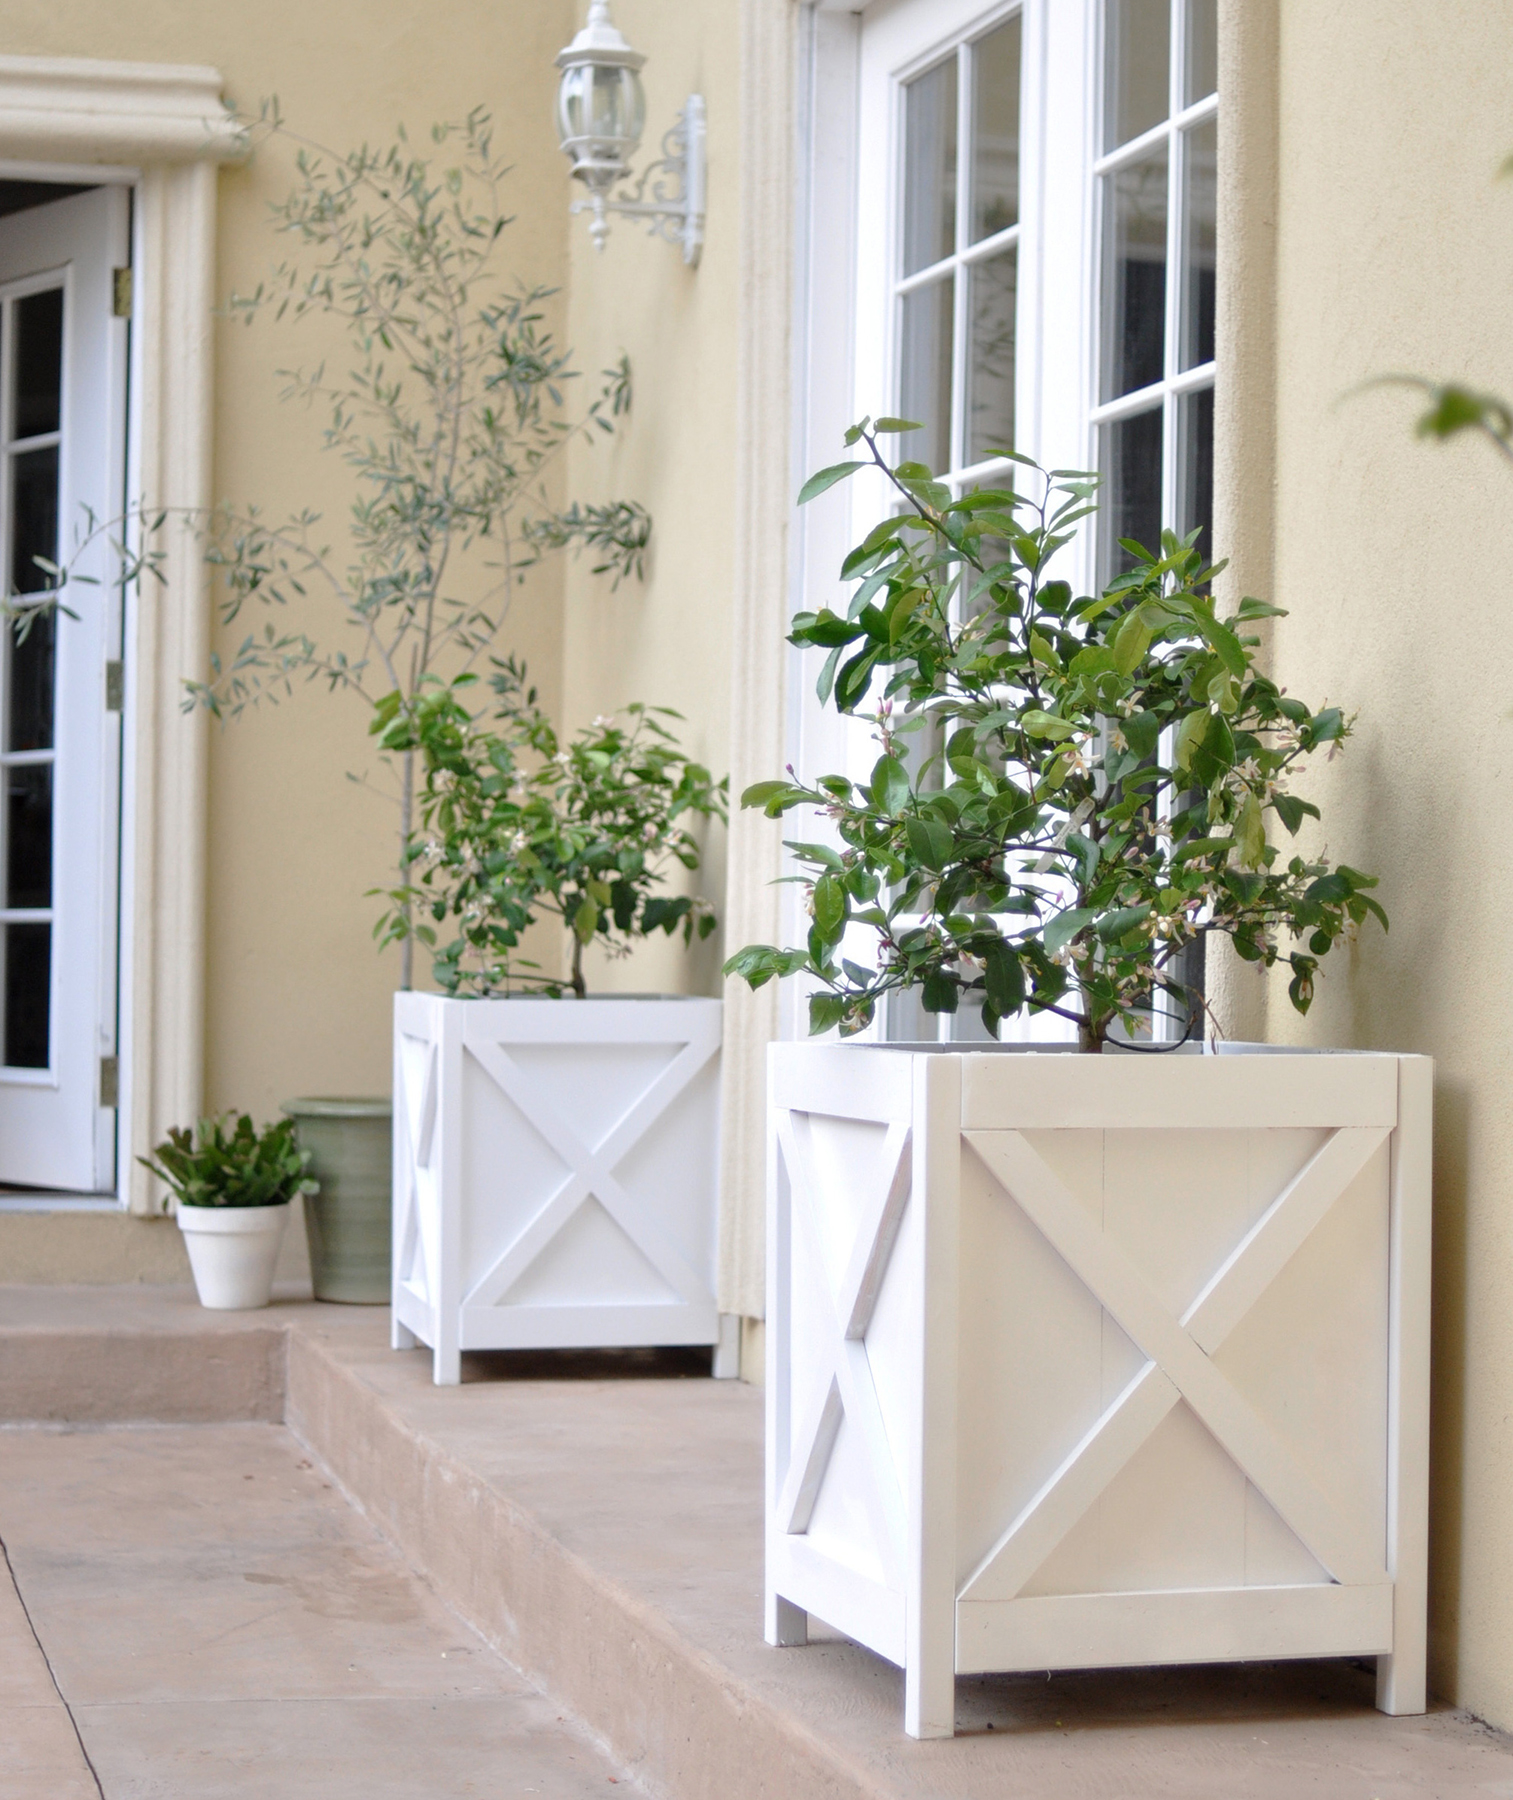 Kate of Centsational Girl: Traditional Planters